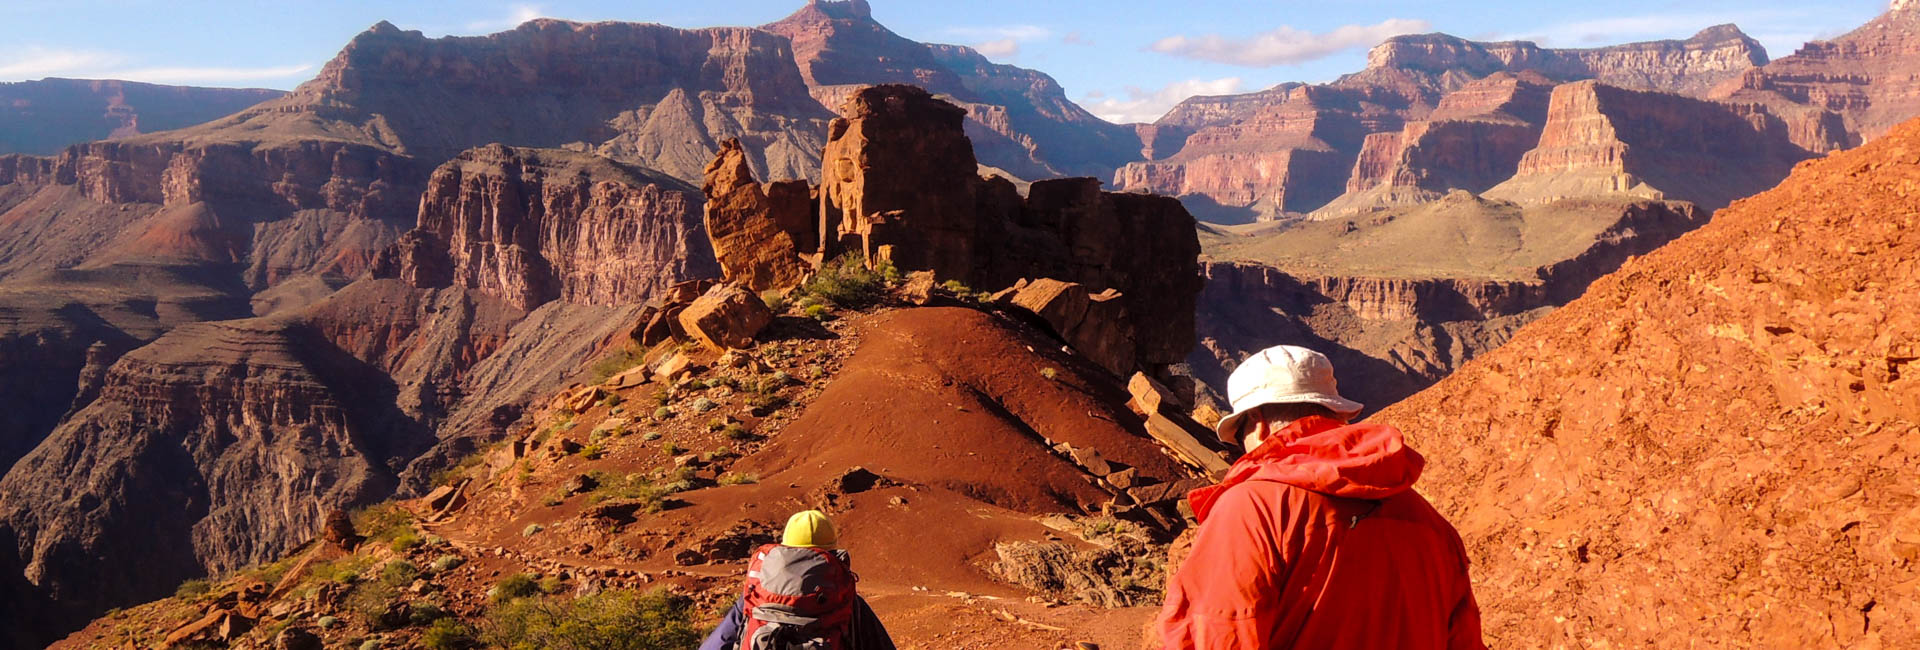 Private Guided Grand Canyon Backpacking:  Rim to Rim